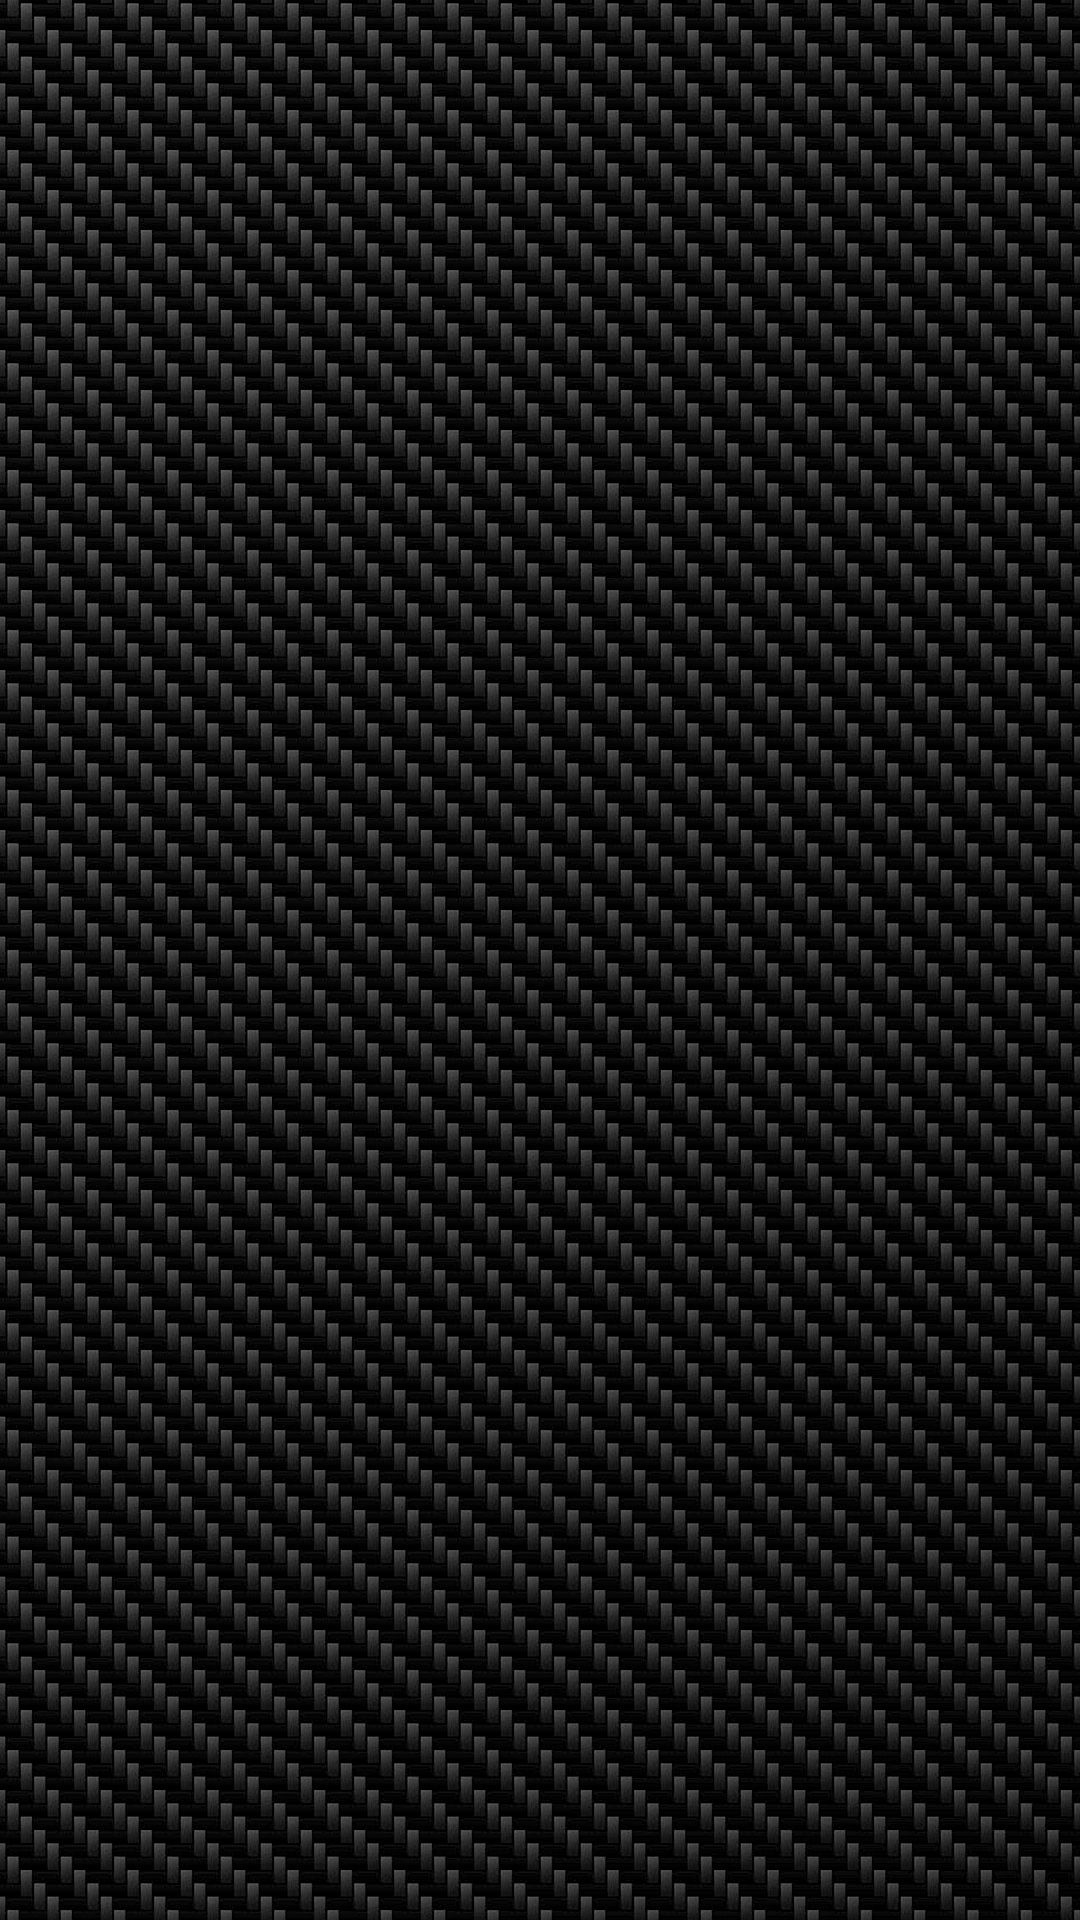 Carbon Fiber iPhone 6 Plus Wallpapers   carbon fiber iPhone 6 1080x1920